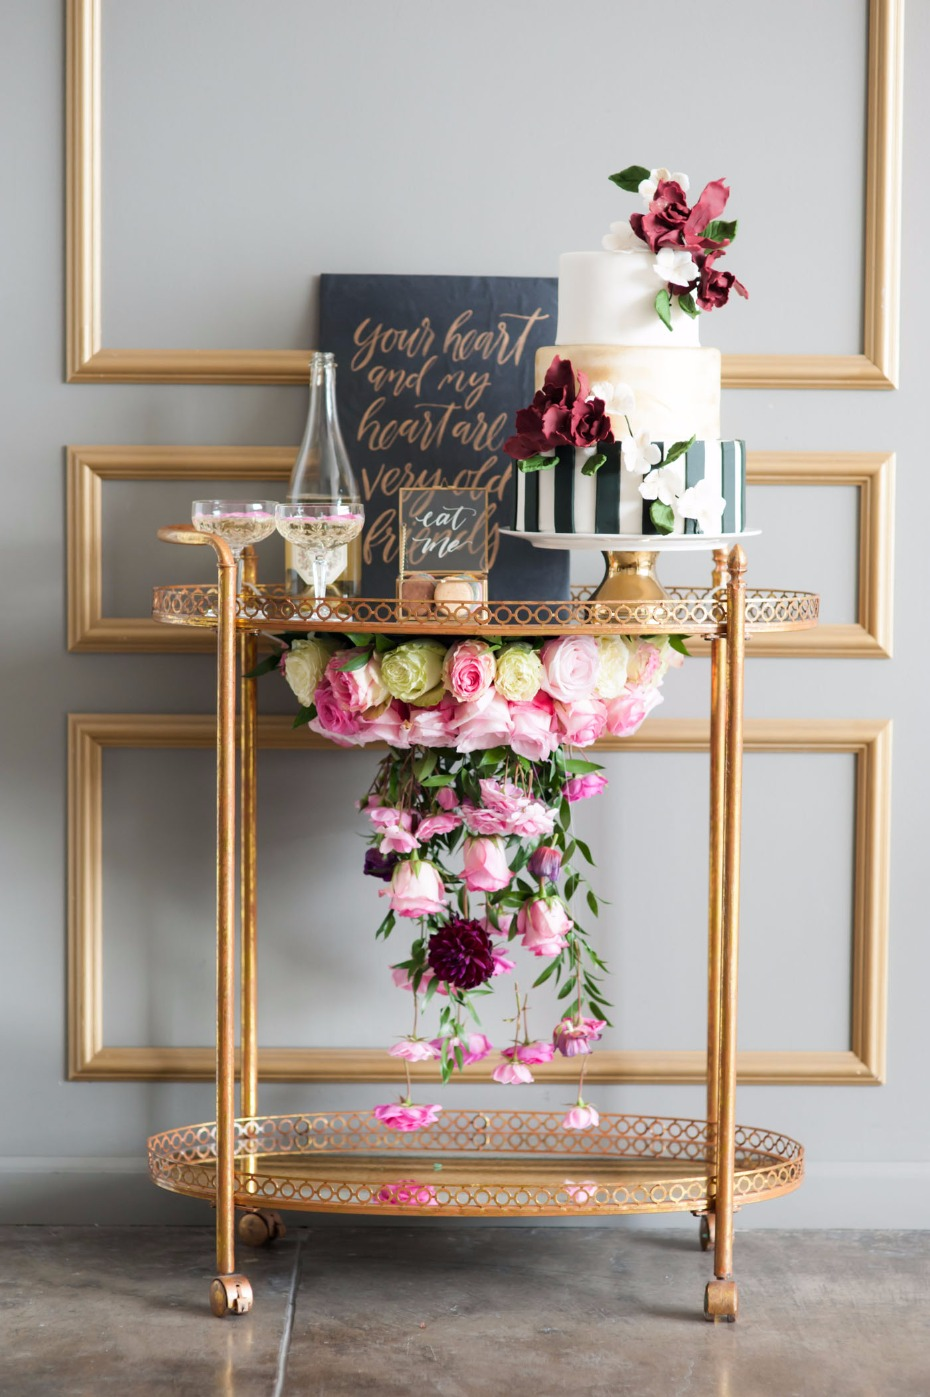 CAKE bar cart with a floral chandelier!